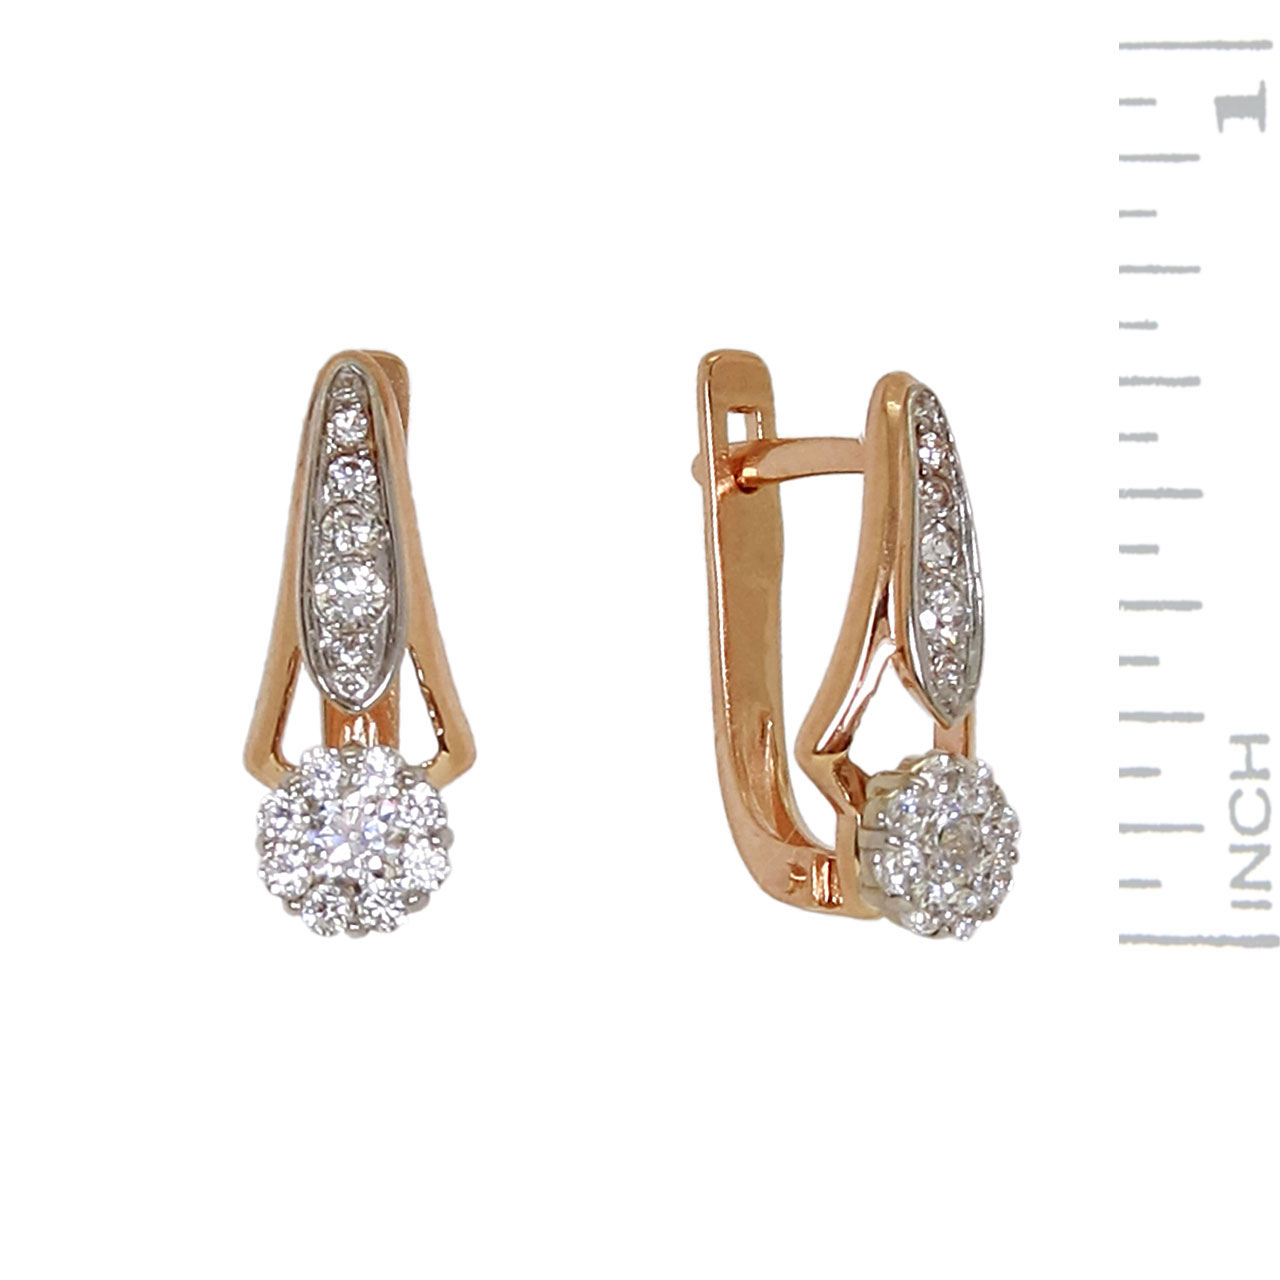 Russian gold CZ earrings 1